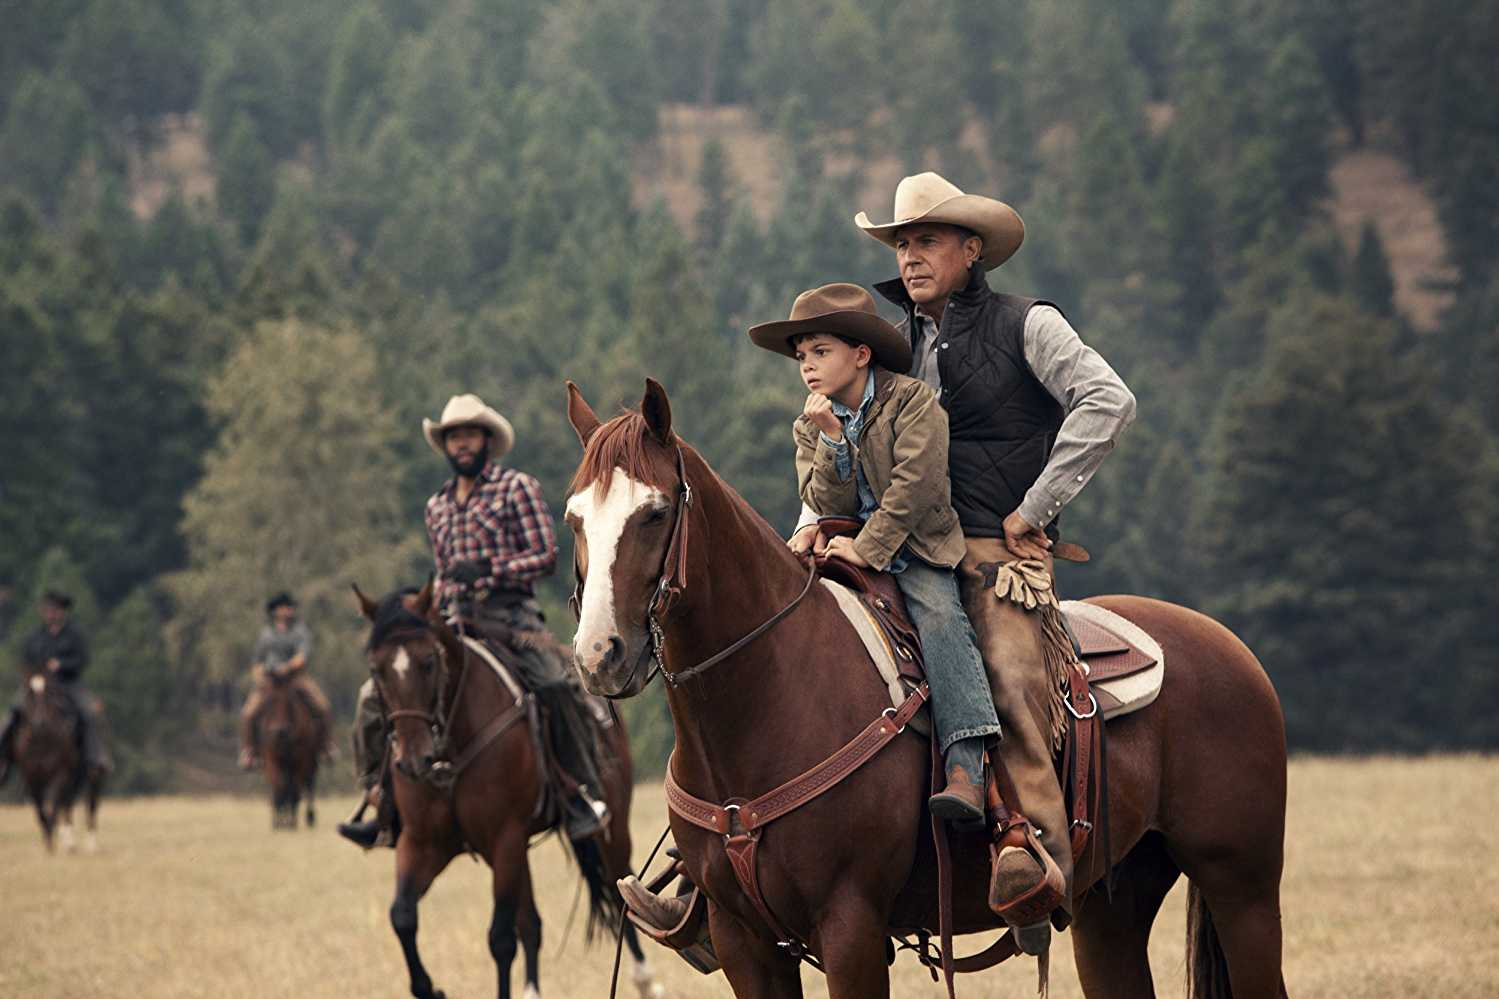 'Yellowstone' premiered to record-high viewership but poor critical reviews (Source: IMDb)